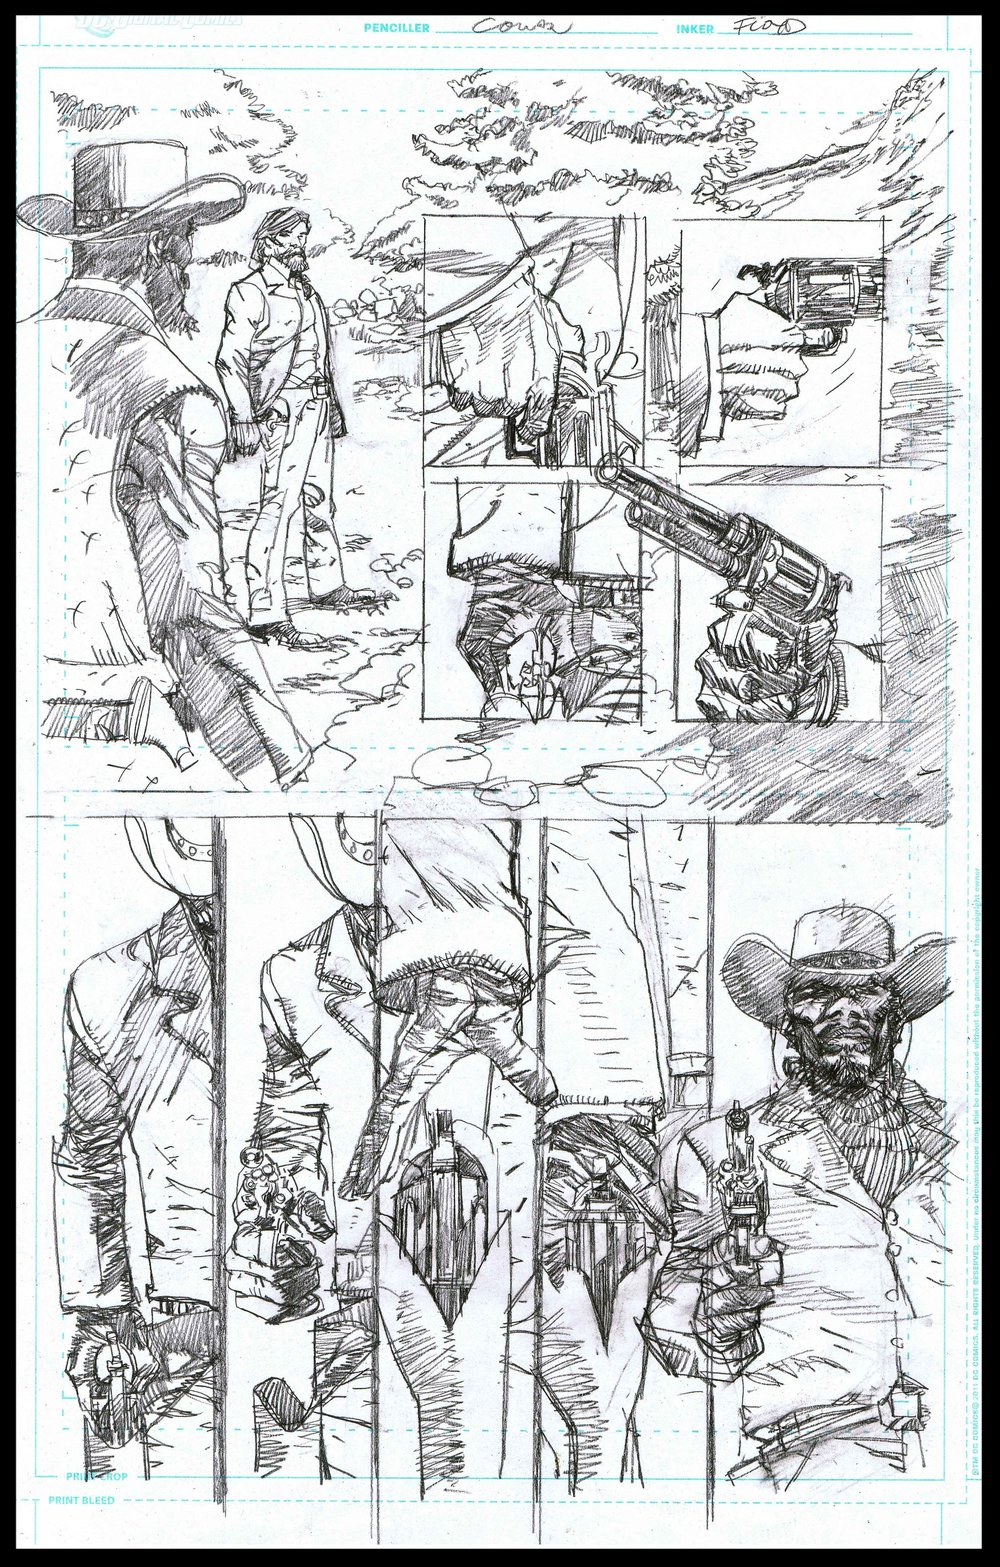 Django Unchained #3 - Page 7 - Pencils